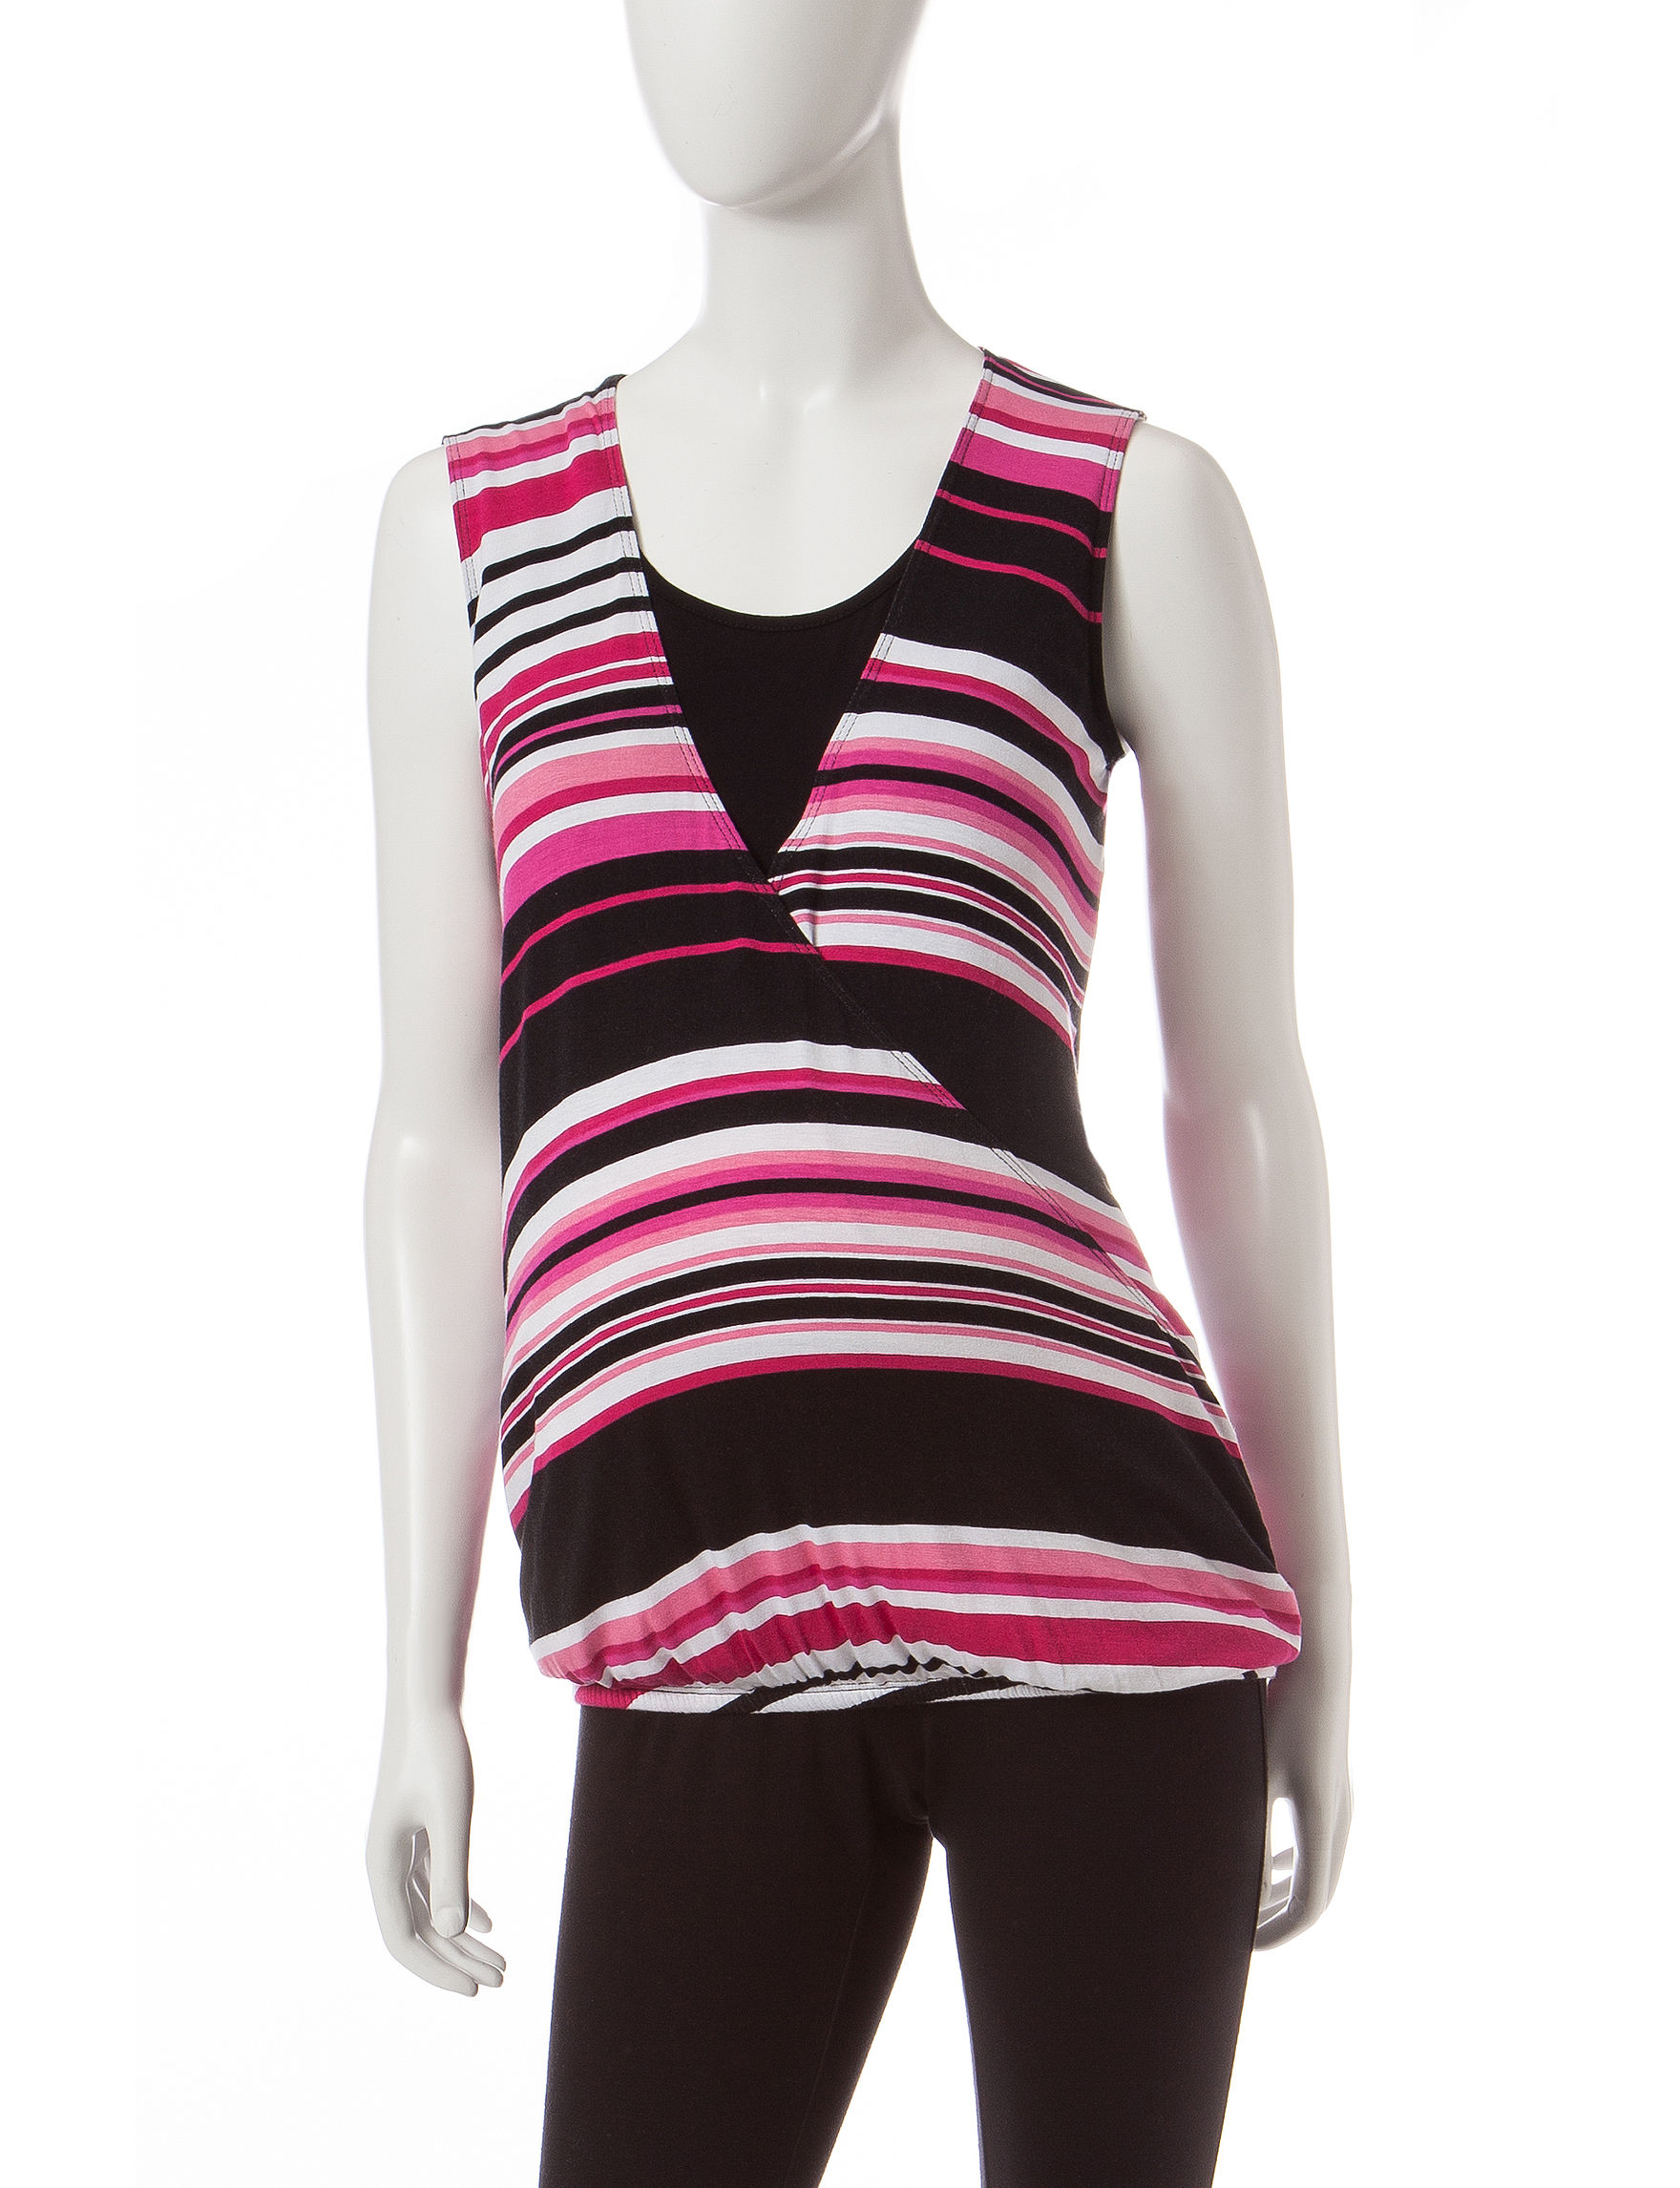 Three Season Maternity Pink / Black